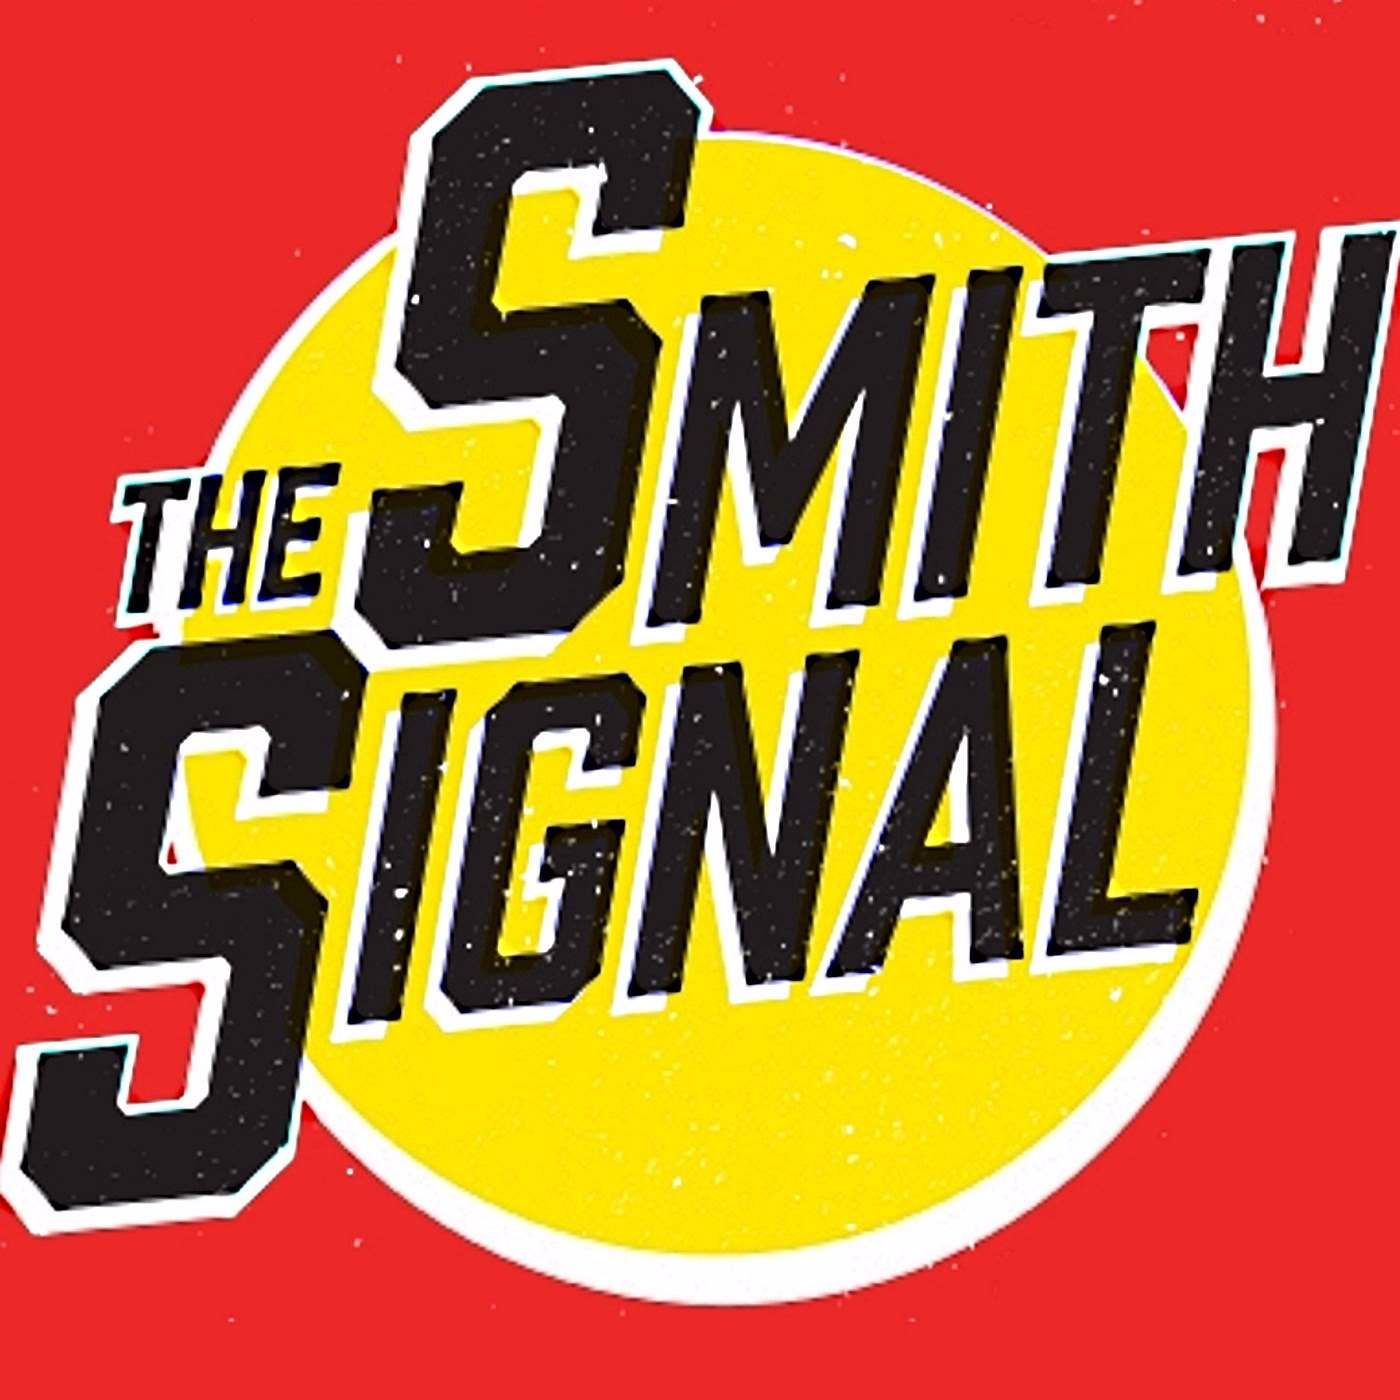 The Smith Signal